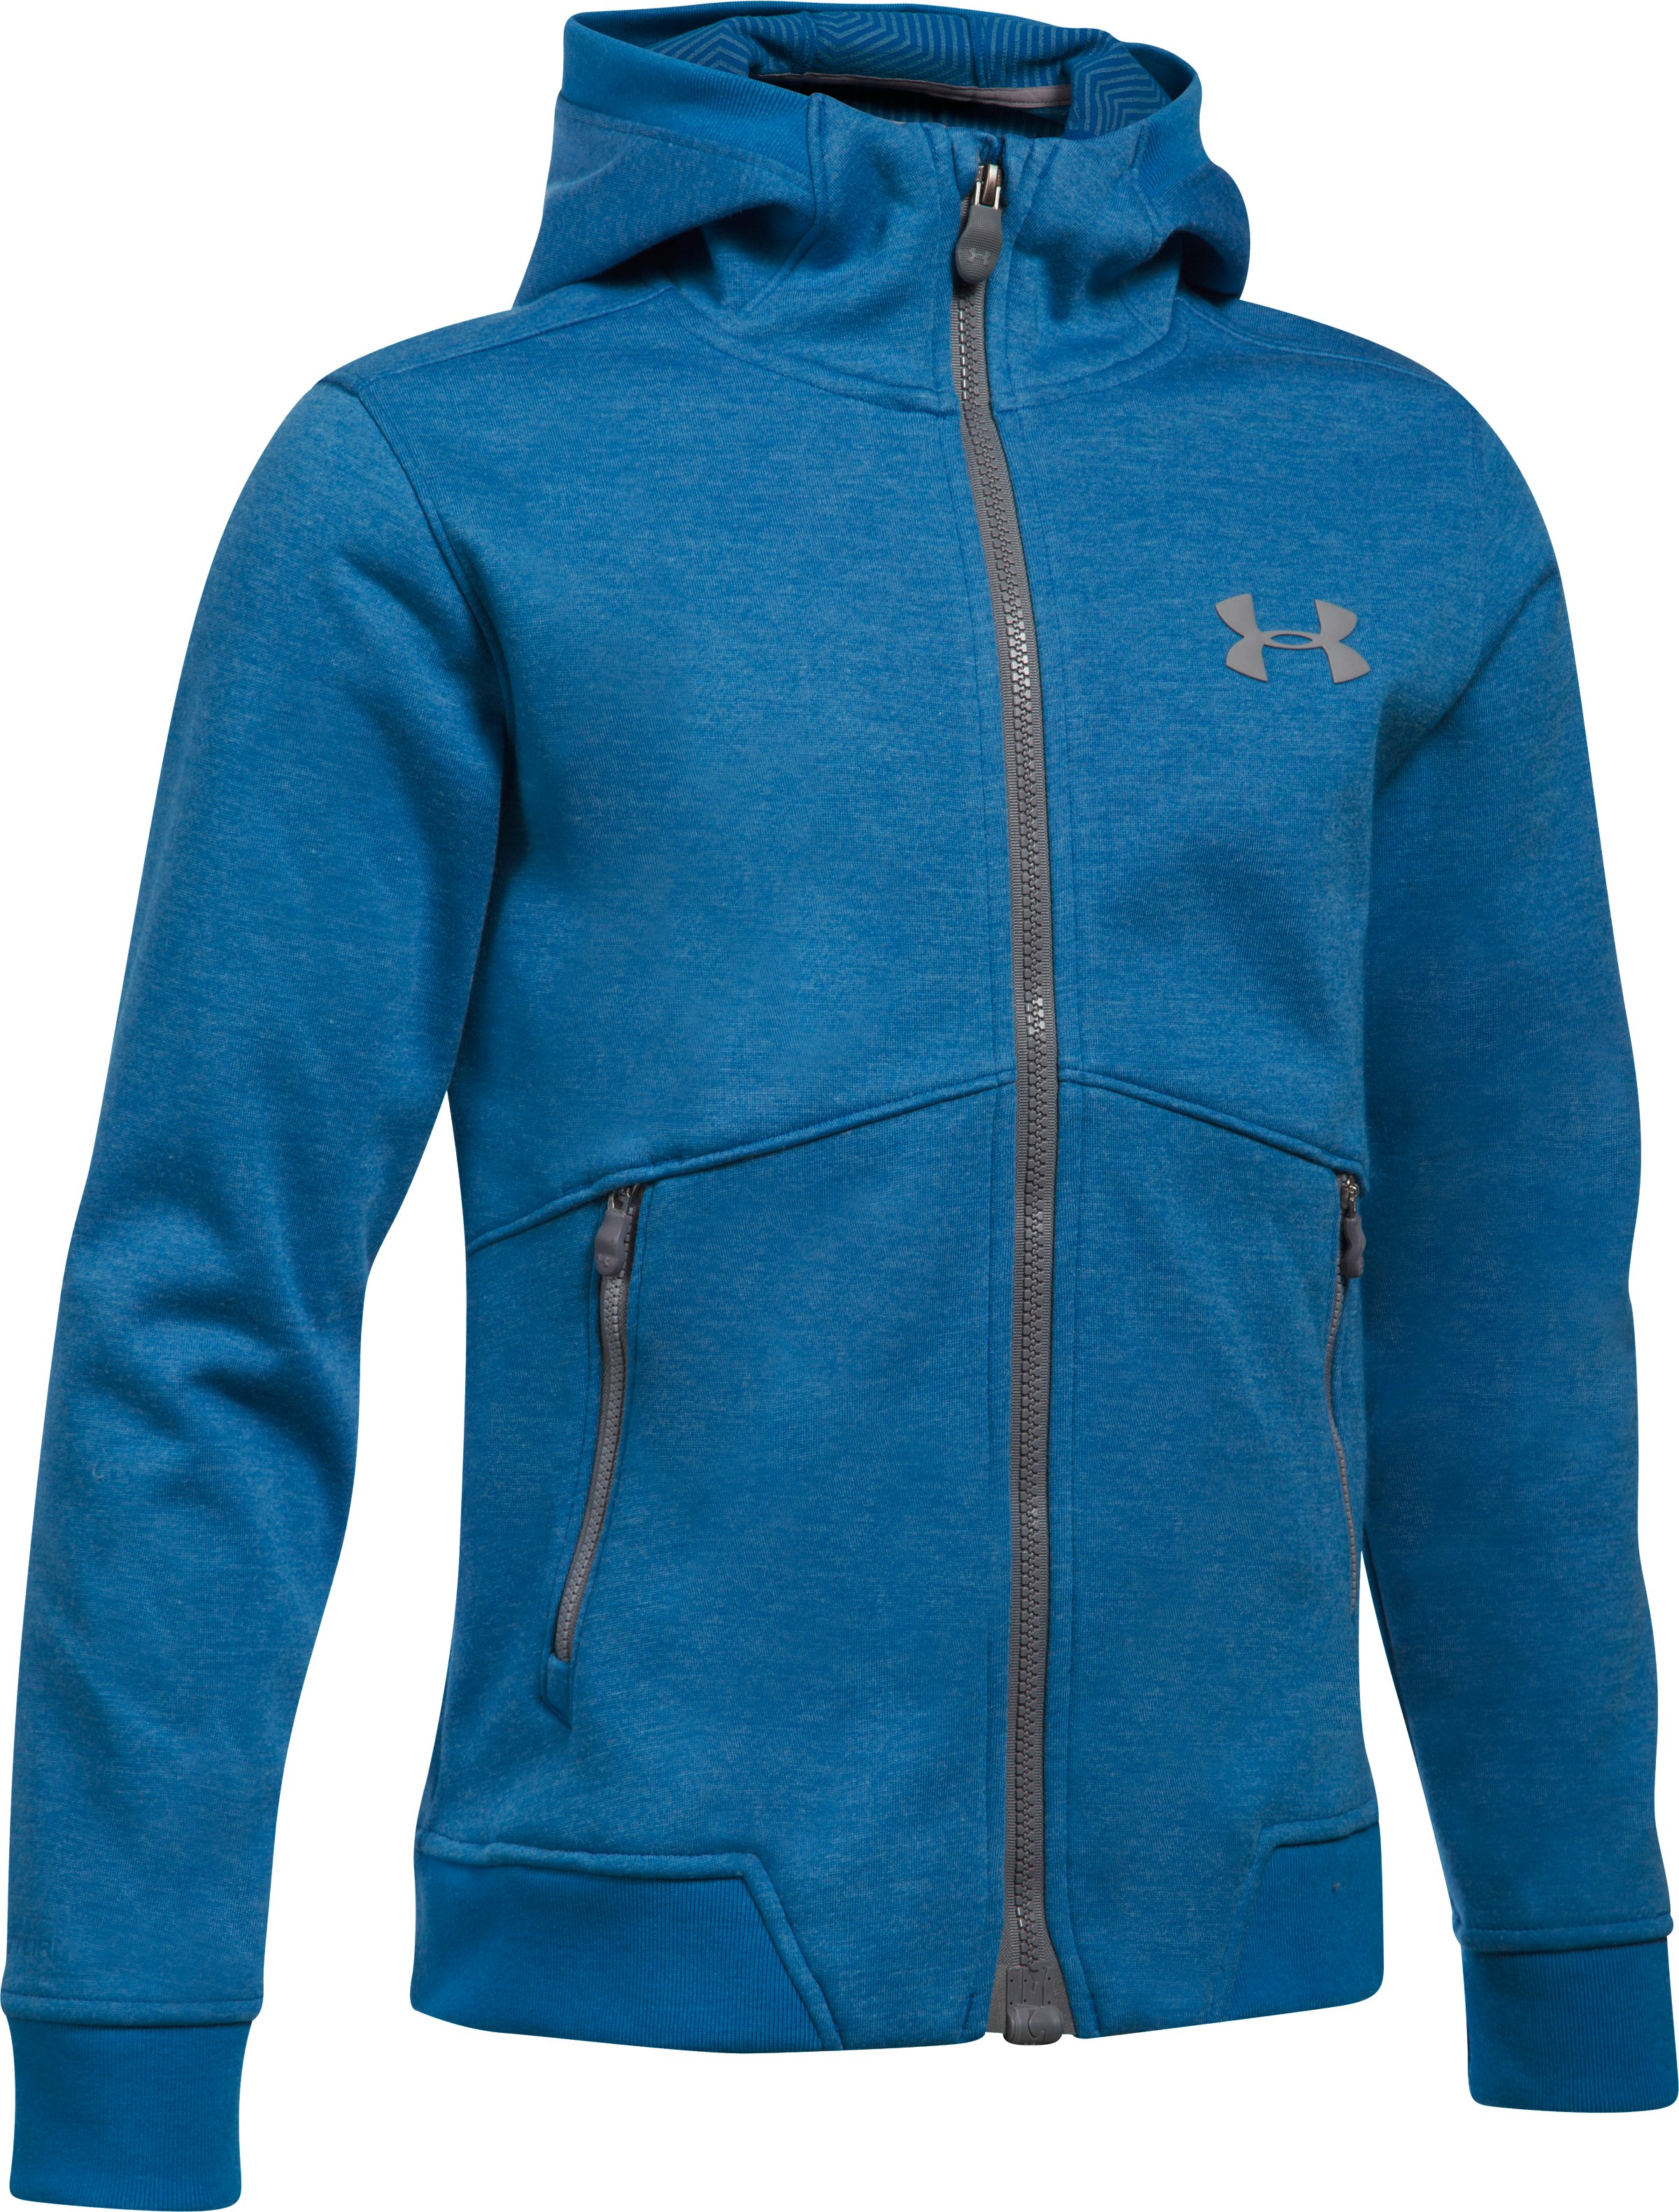 Boys' UA Storm Dobson Softshell, CRUISE BLUE